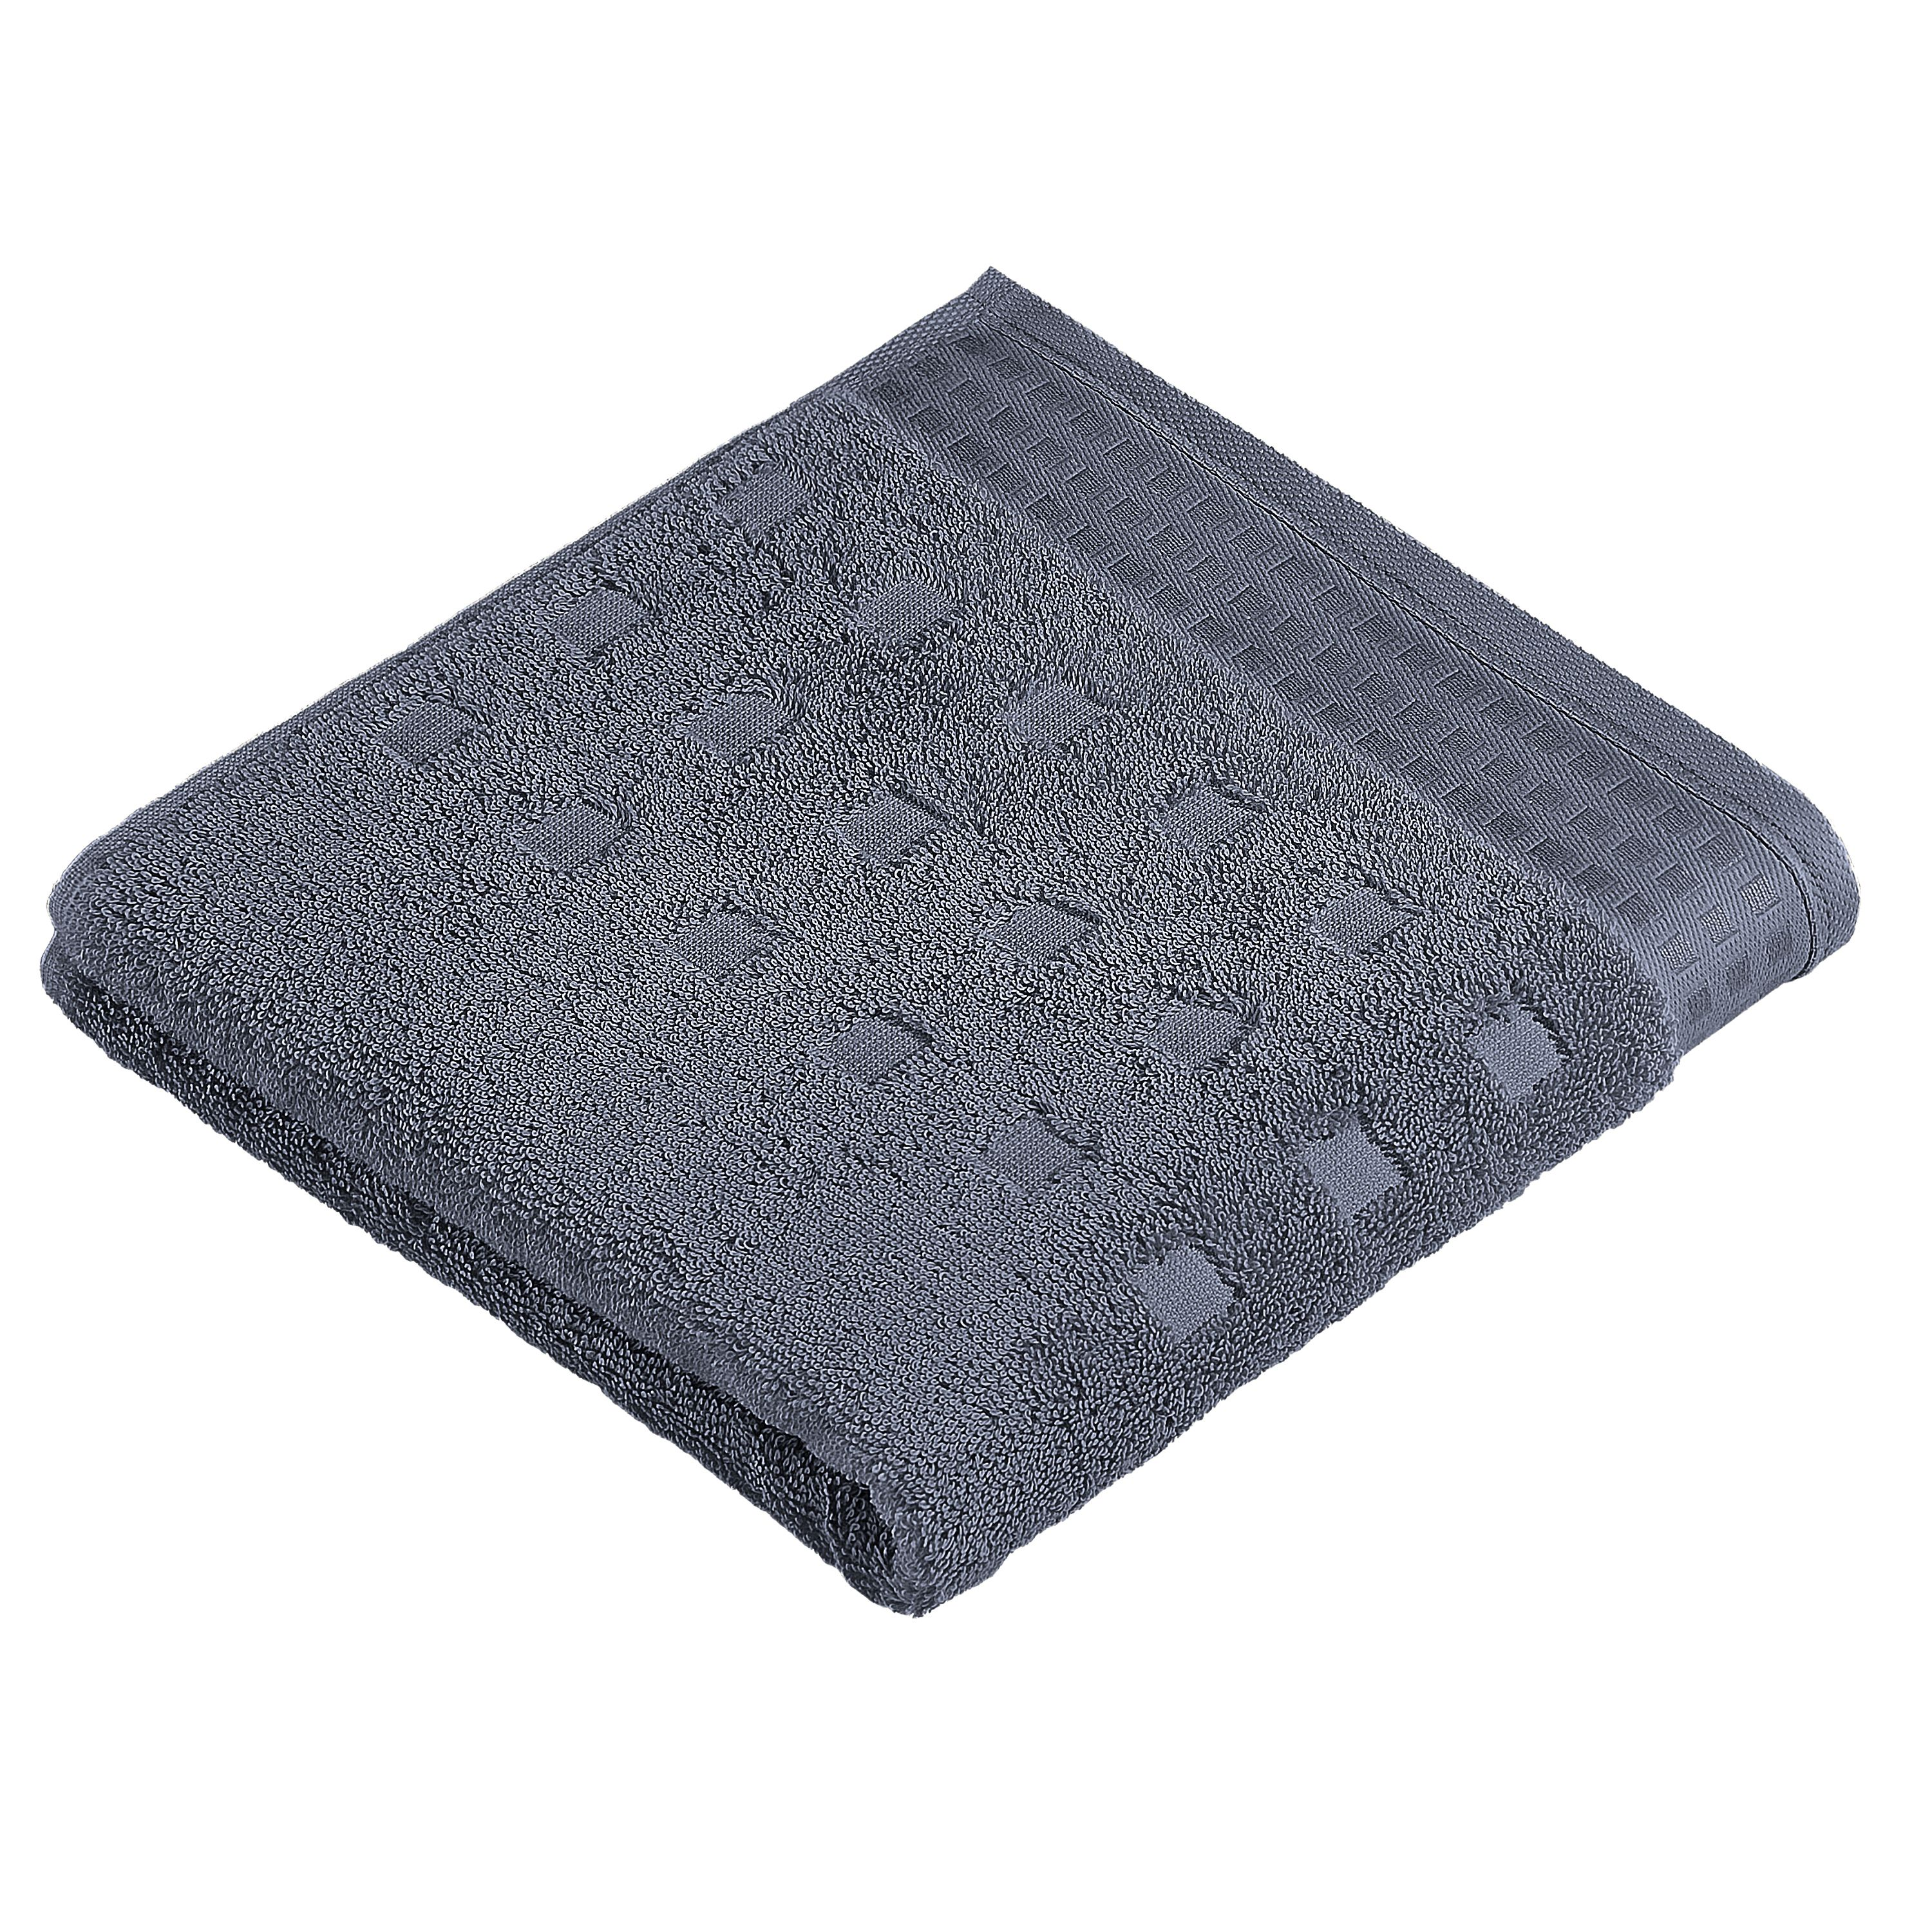 Country style  towels in charcoal